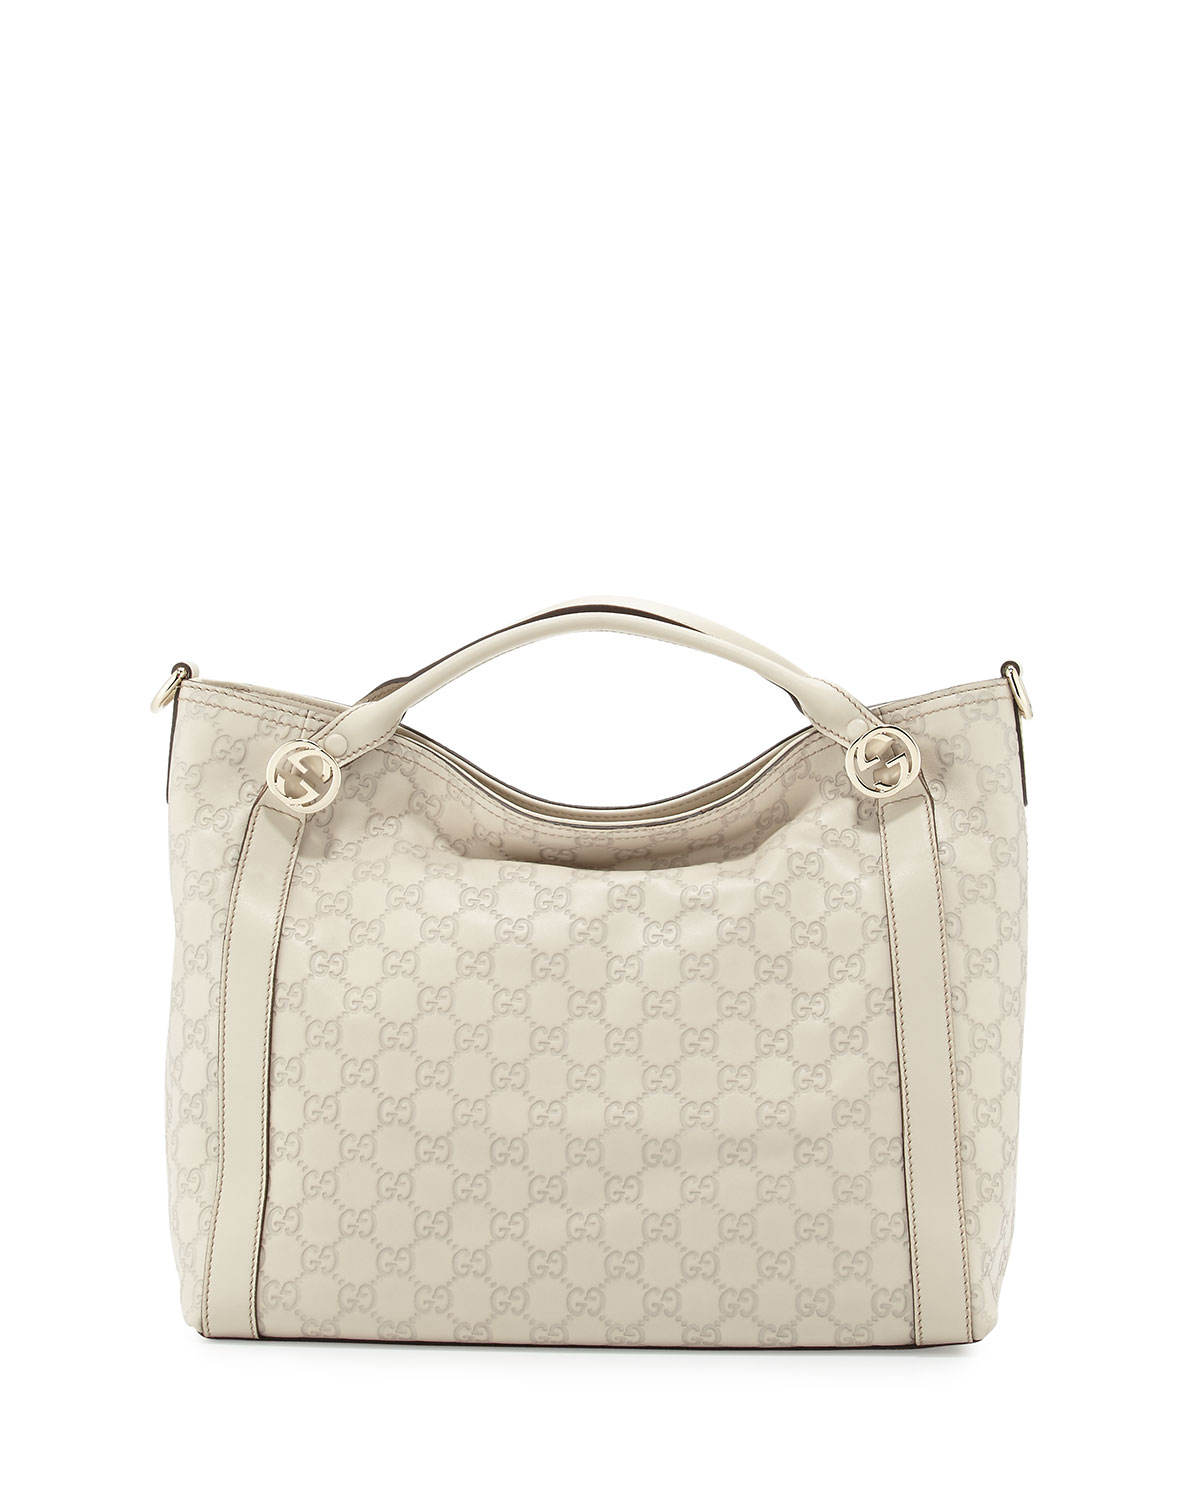 Miss Guccissima Large Top Handle Bag, White